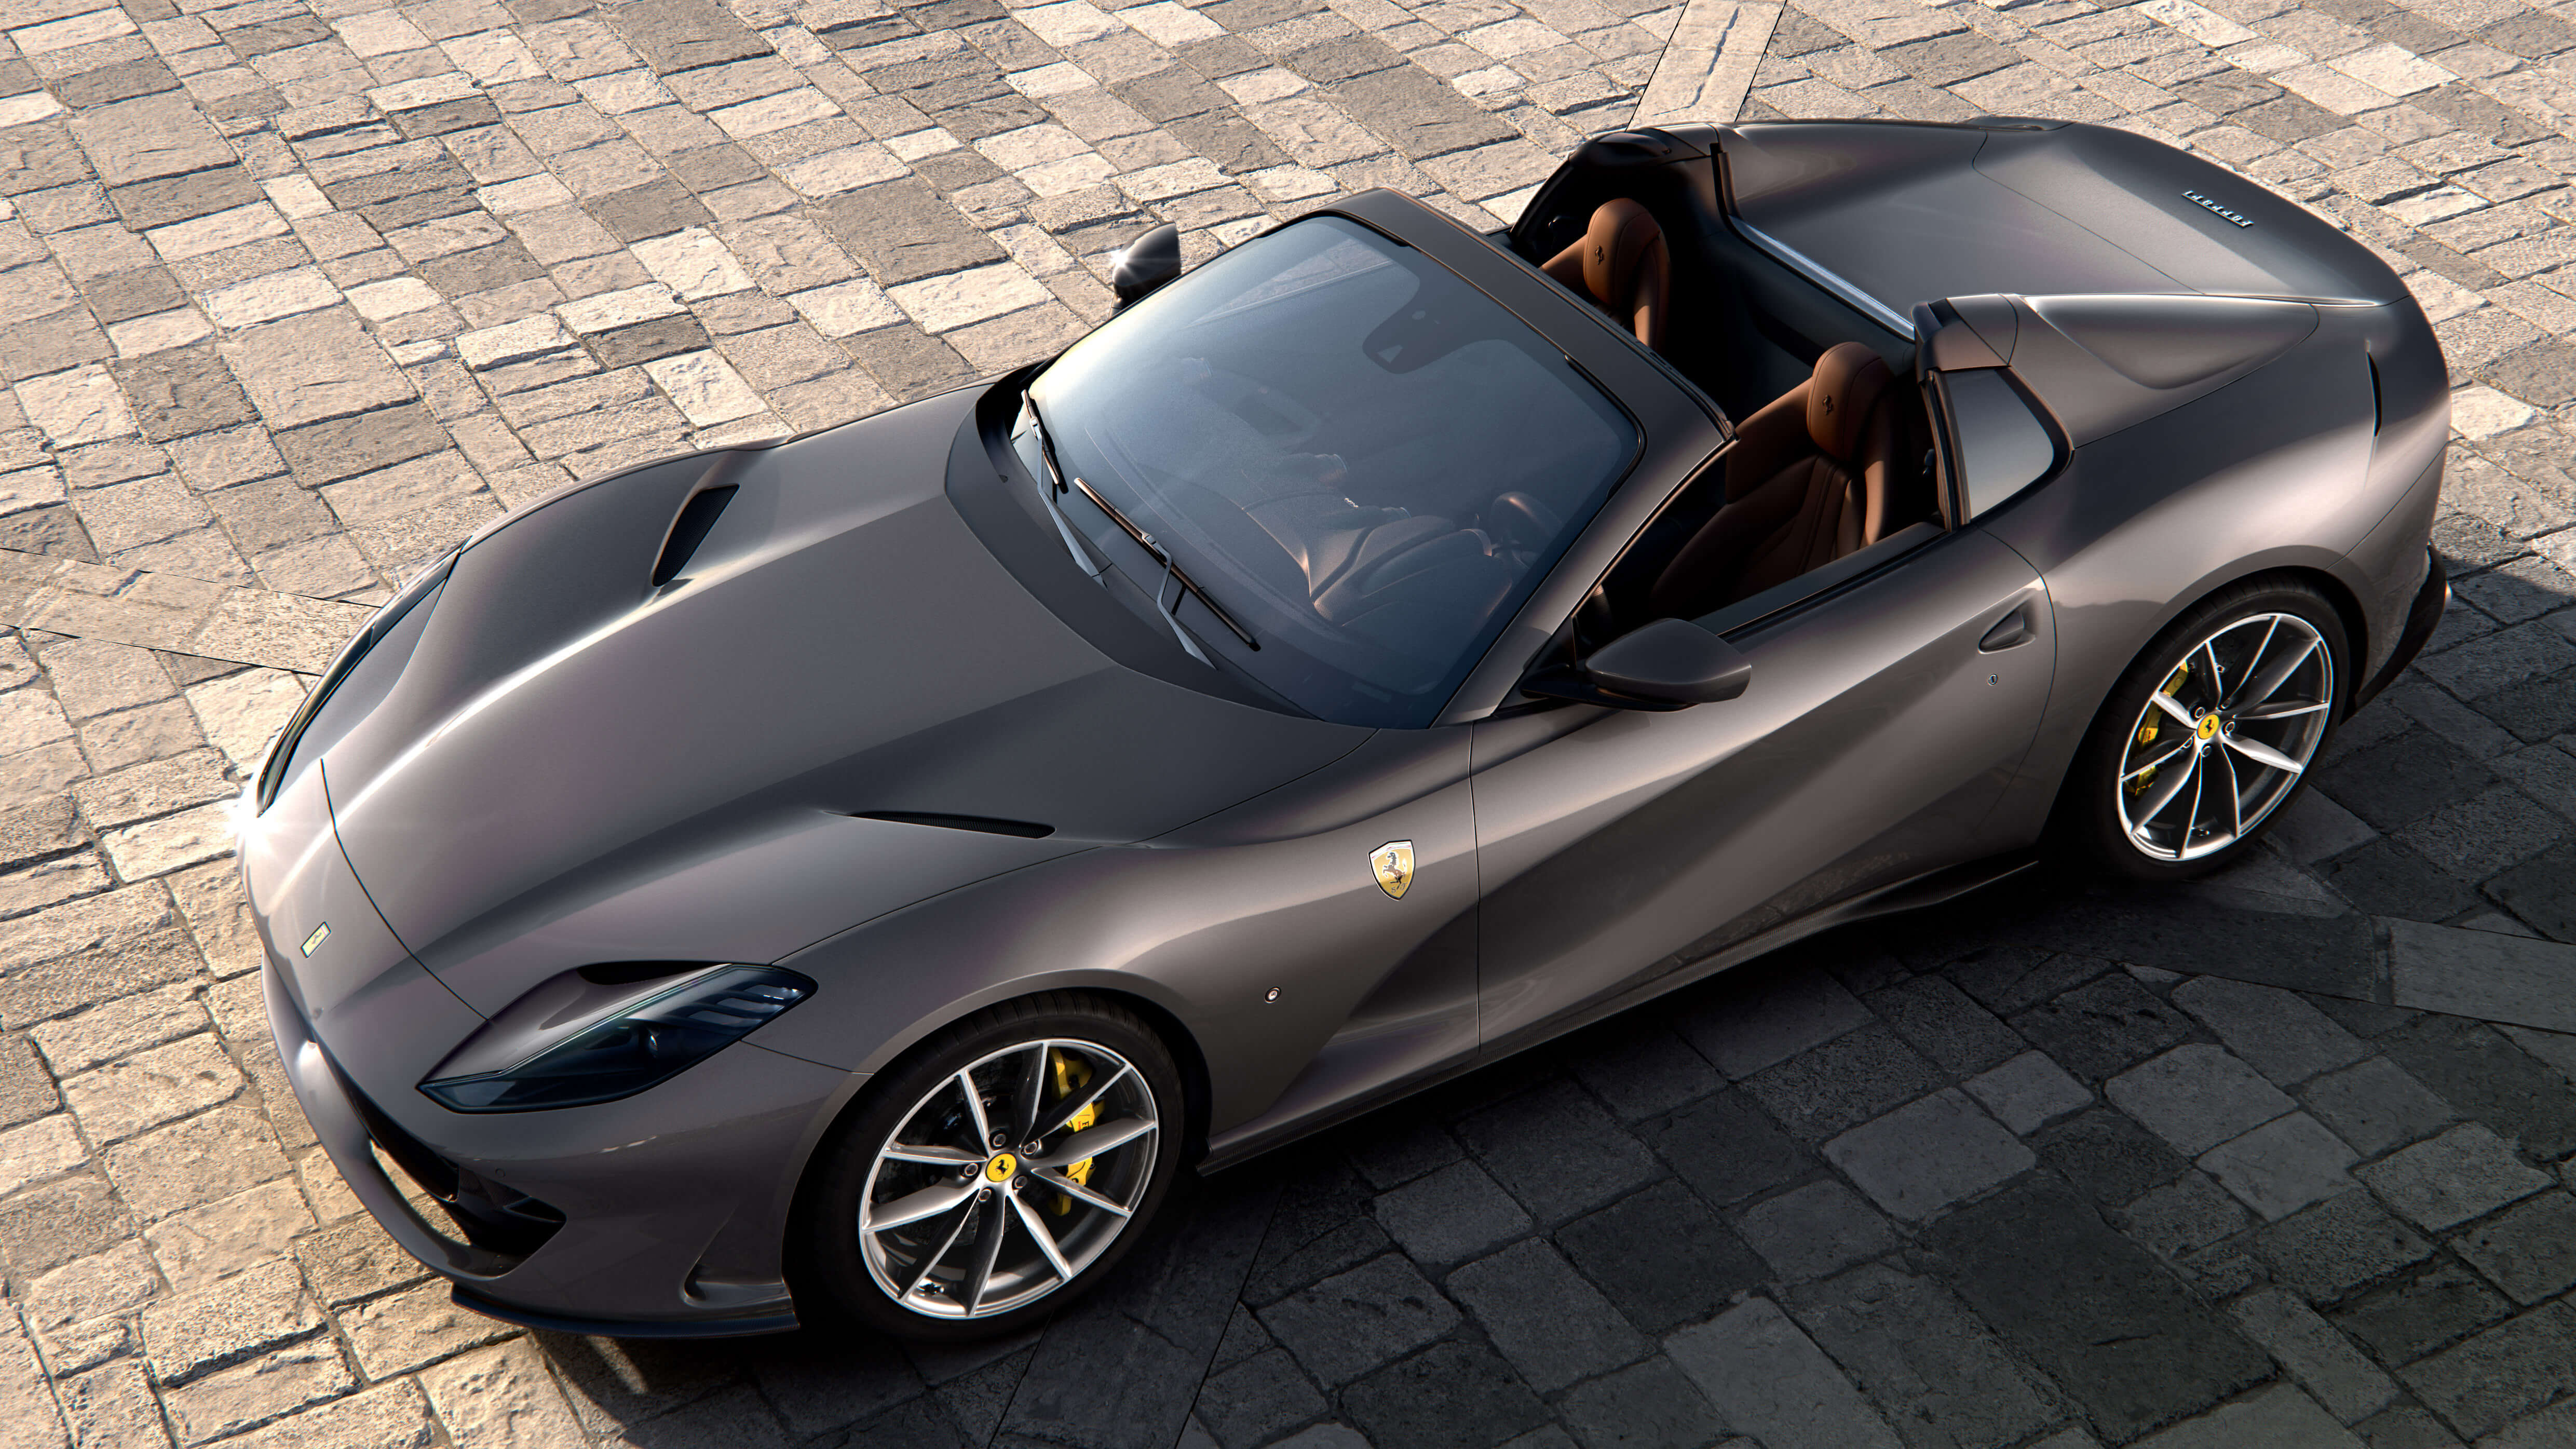 Ferrari 812 GTS Is A V12-Powered Convertible That Gets To 124 MPH in Just 8.3 Seconds